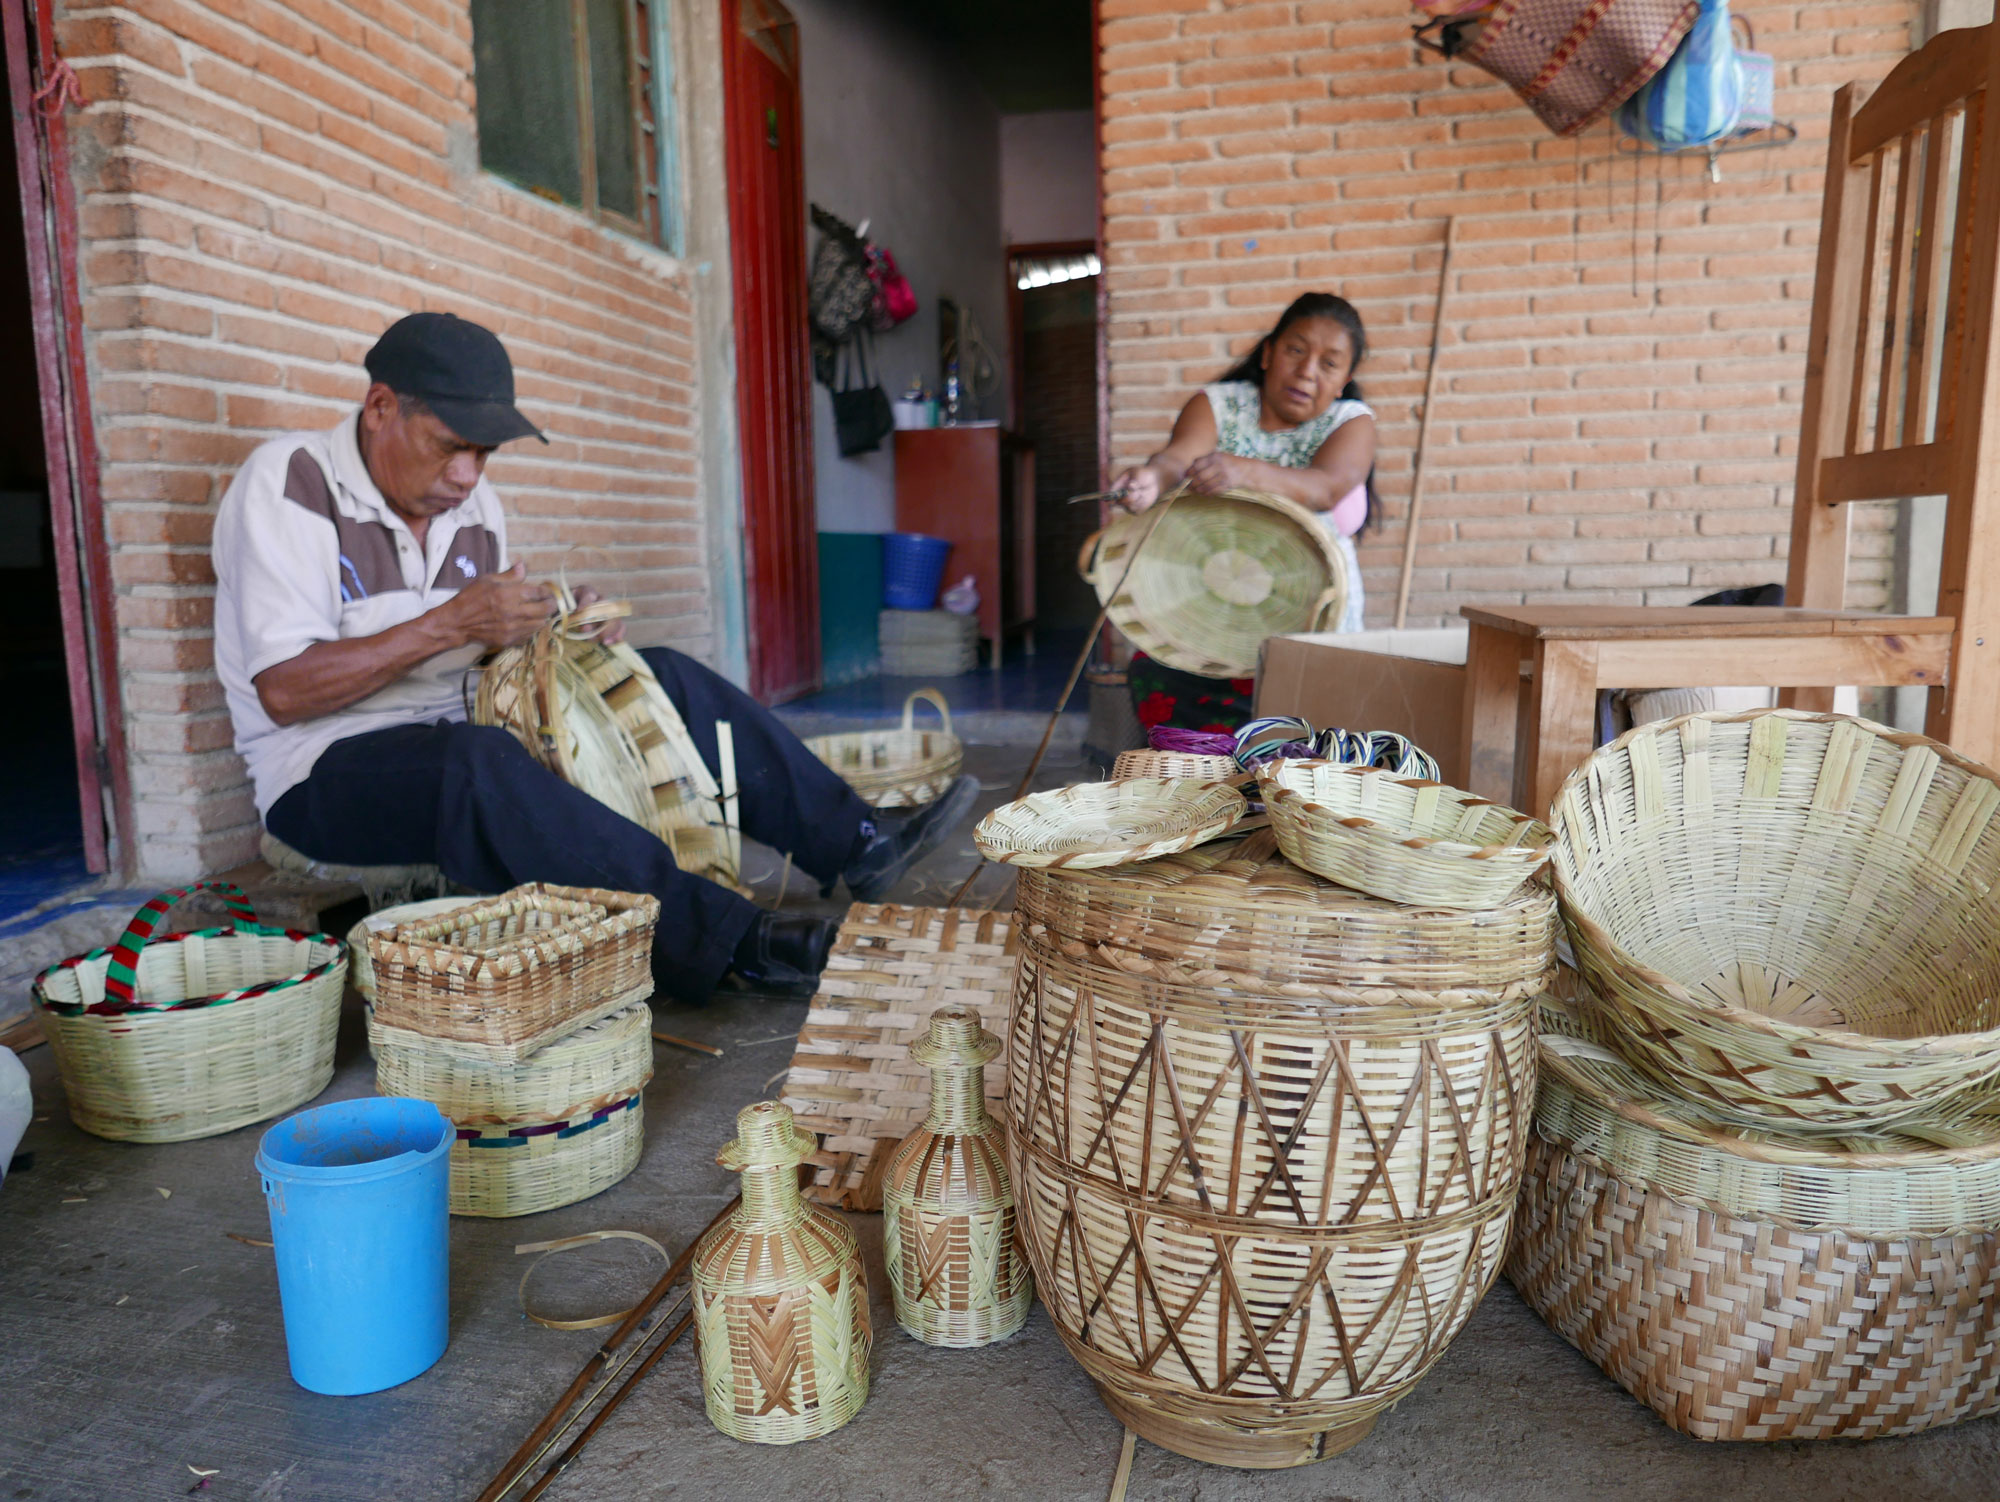 Basket Weaving using Carrizo in Oaxaca Mexico - www.nidocollective.com/carrizoweaving #carrizo #canastascarrizo #mexicanartisancrafts